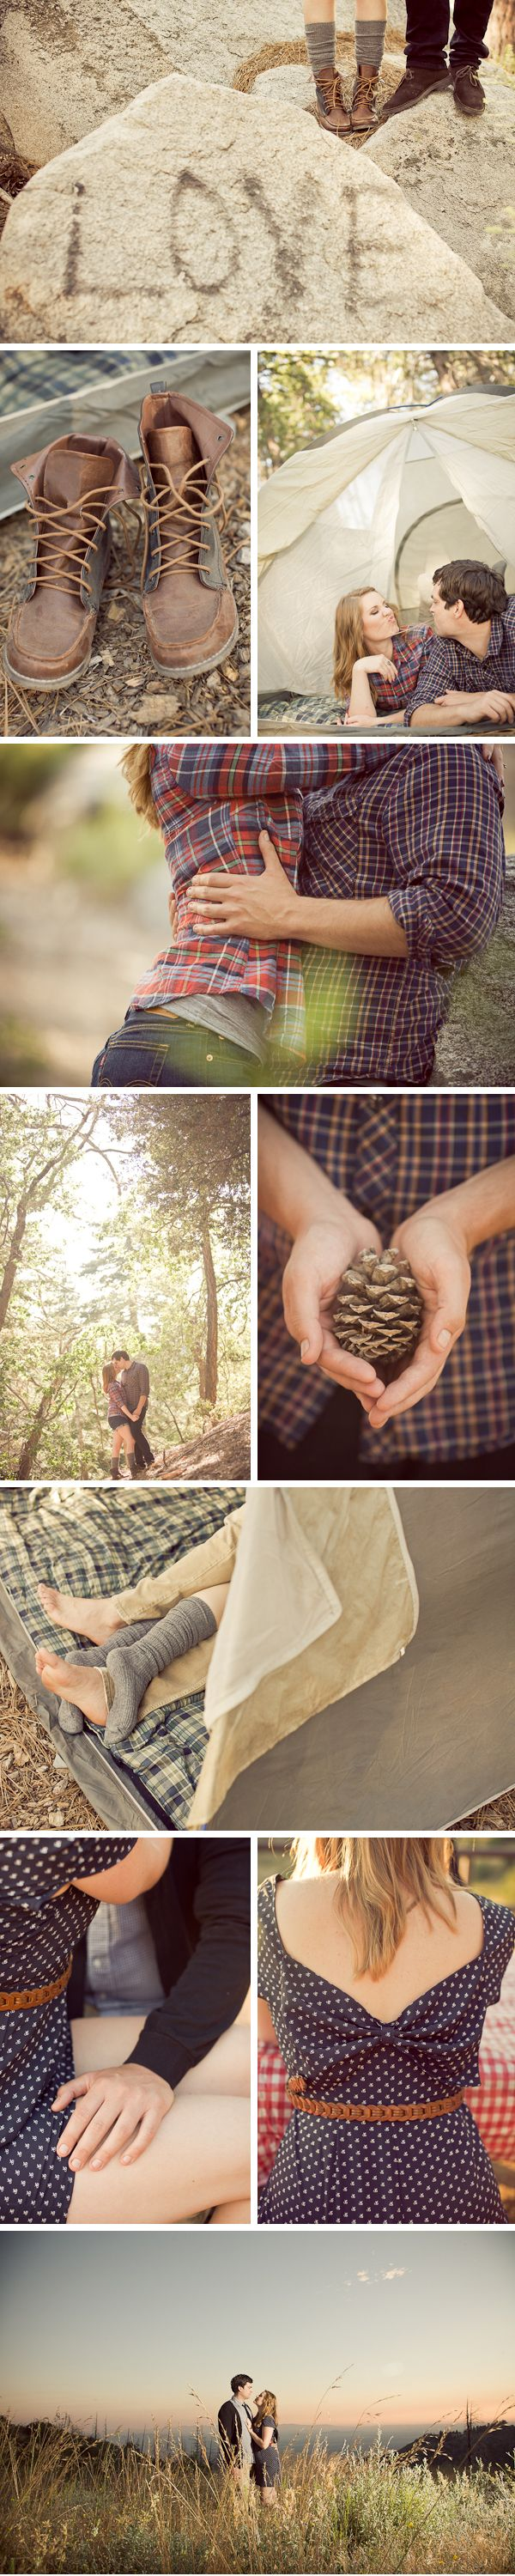 3 of my favorite things..camping, photography, and love. Photography copyright Kaysha Weiner.